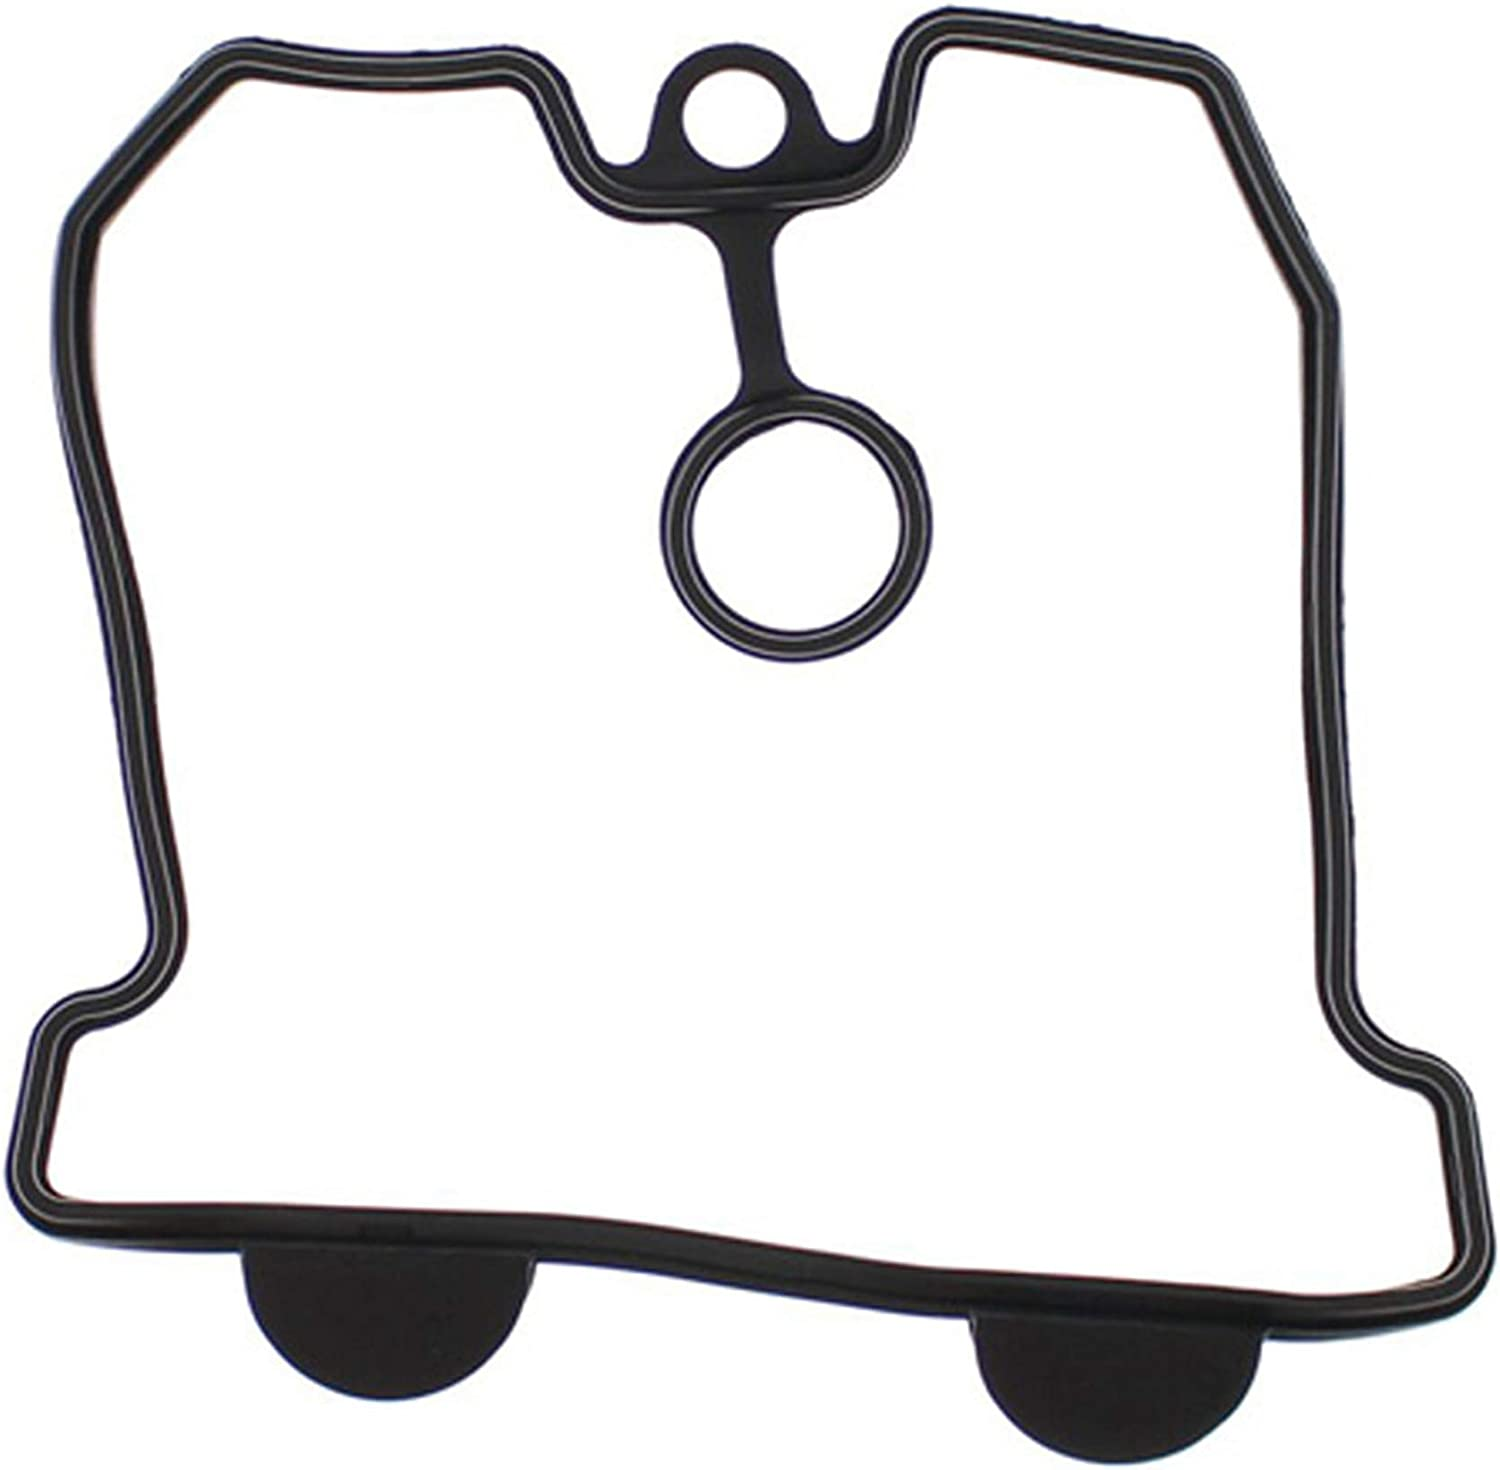 Head Cover Free shipping anywhere in the nation Gasket Fits Seattle Mall 2003 Kawasaki KLX400R